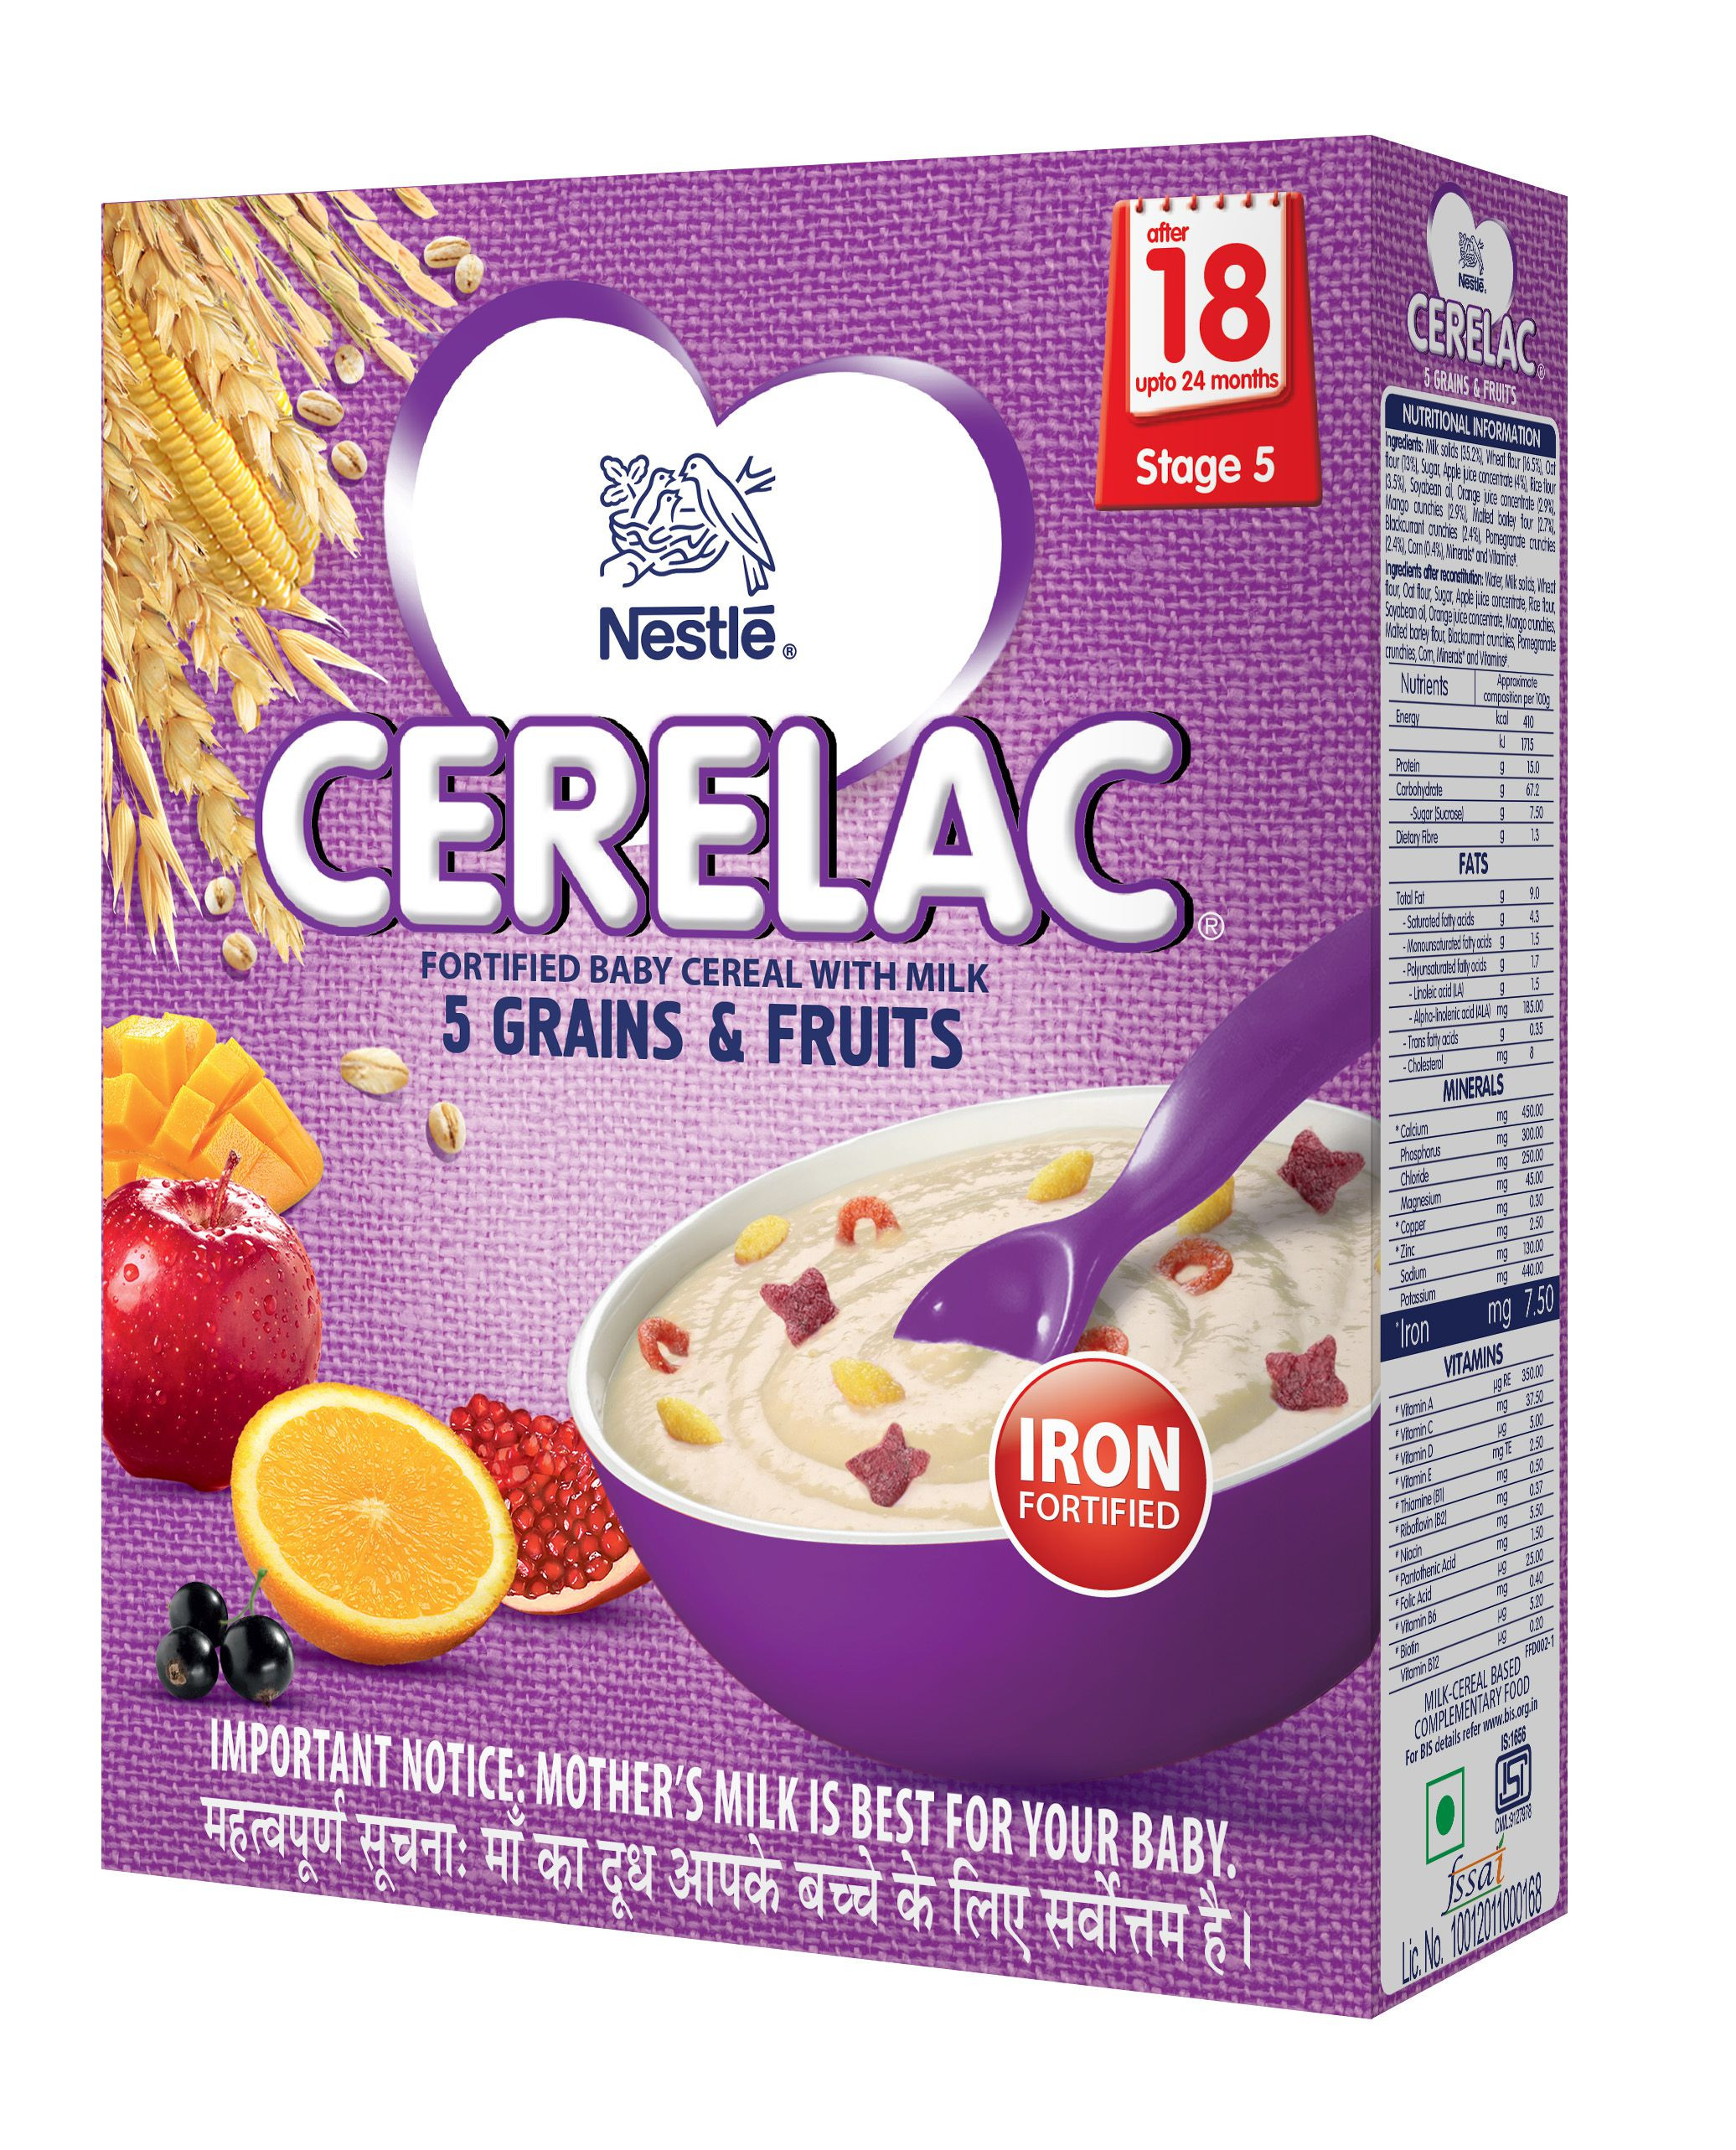 Nestle CERELAC Infant Cereal Stage 5 18 Months 24 Months 5 Grains and Fruits 300 g